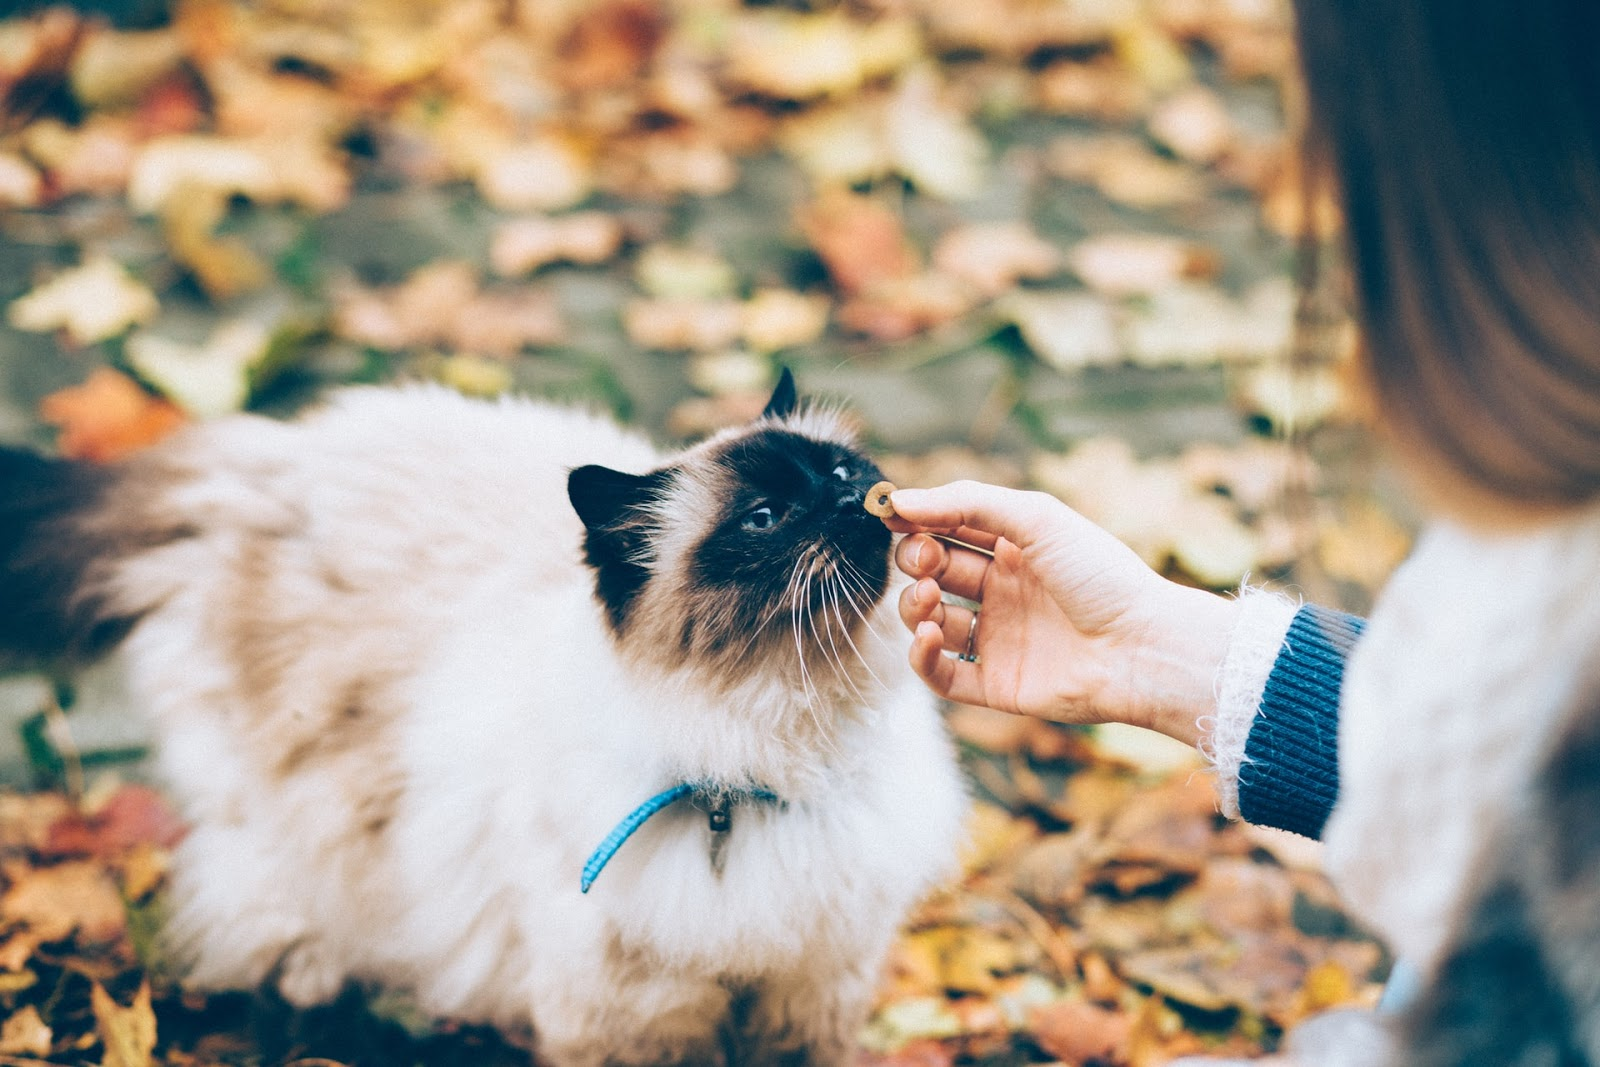 A long-haired Siamese cat sniffs at an offered treat from a woman's hand.